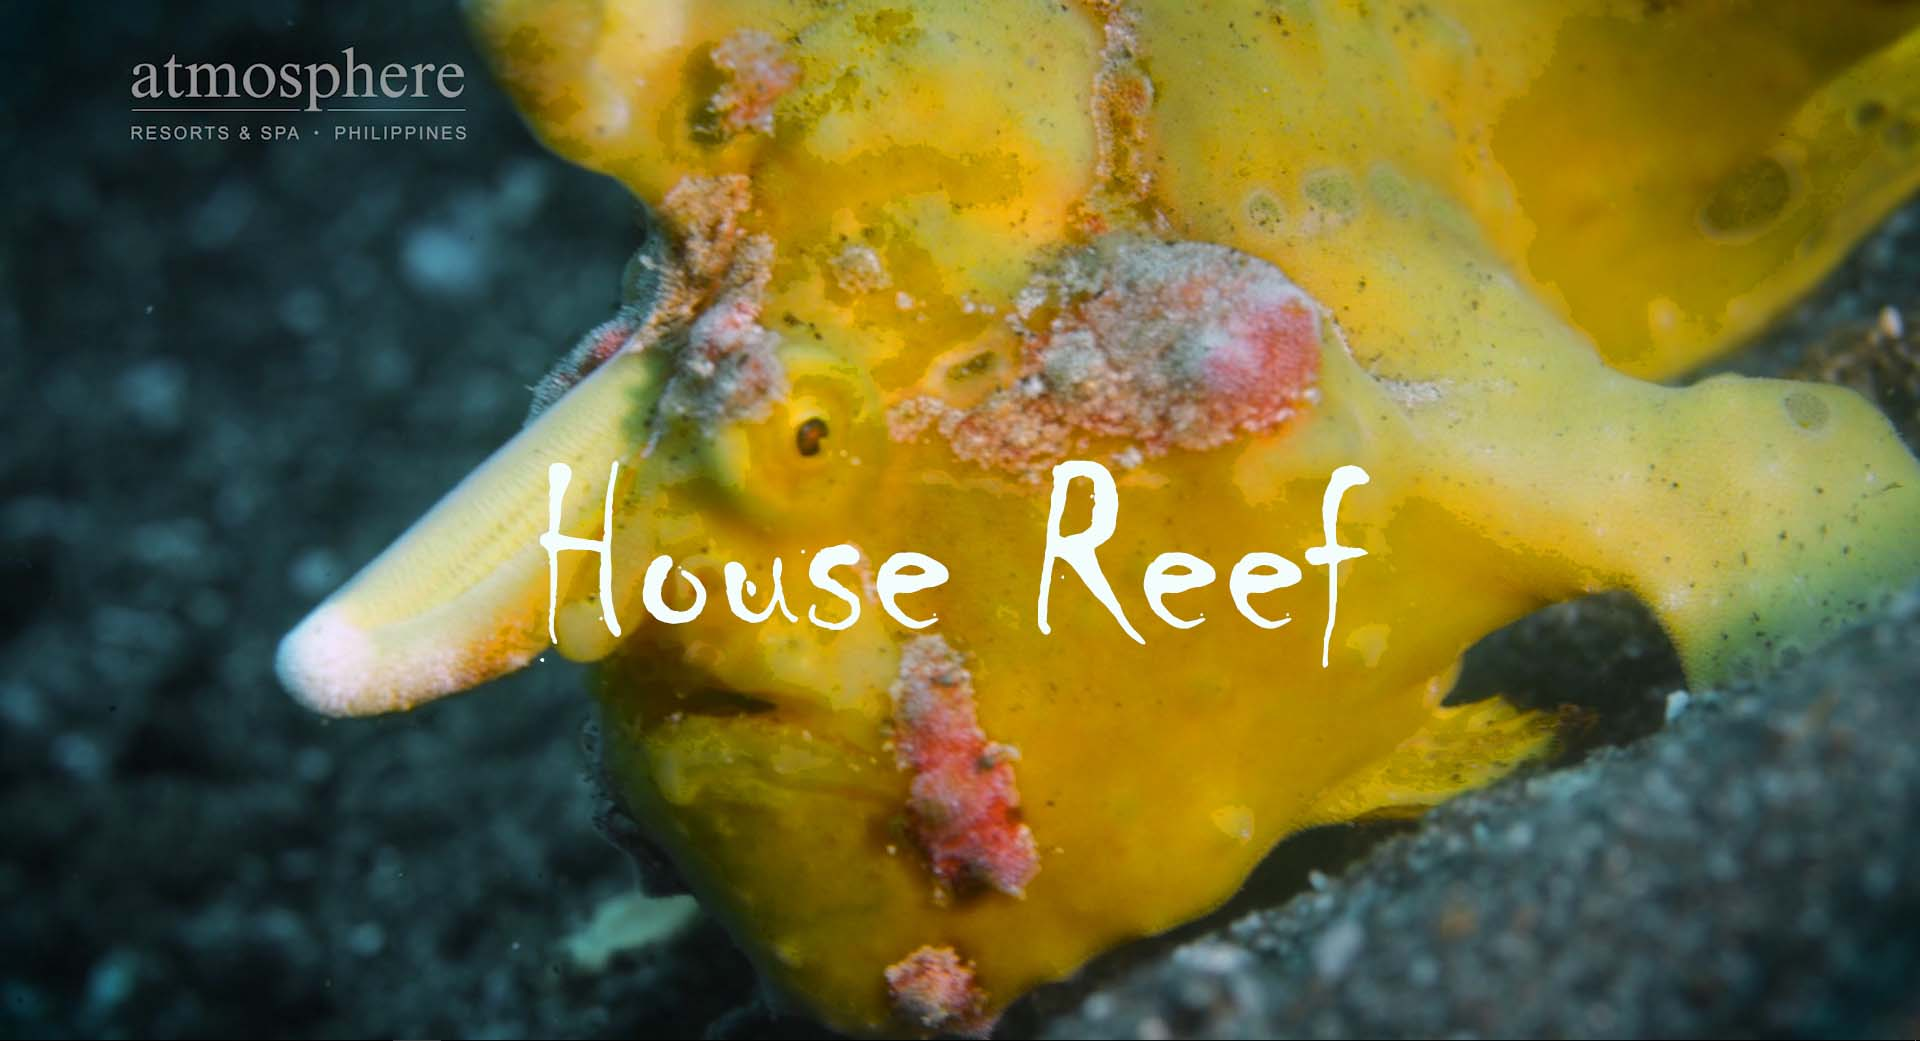 Atmosphere house reef Dauin Dumaguete Philippines